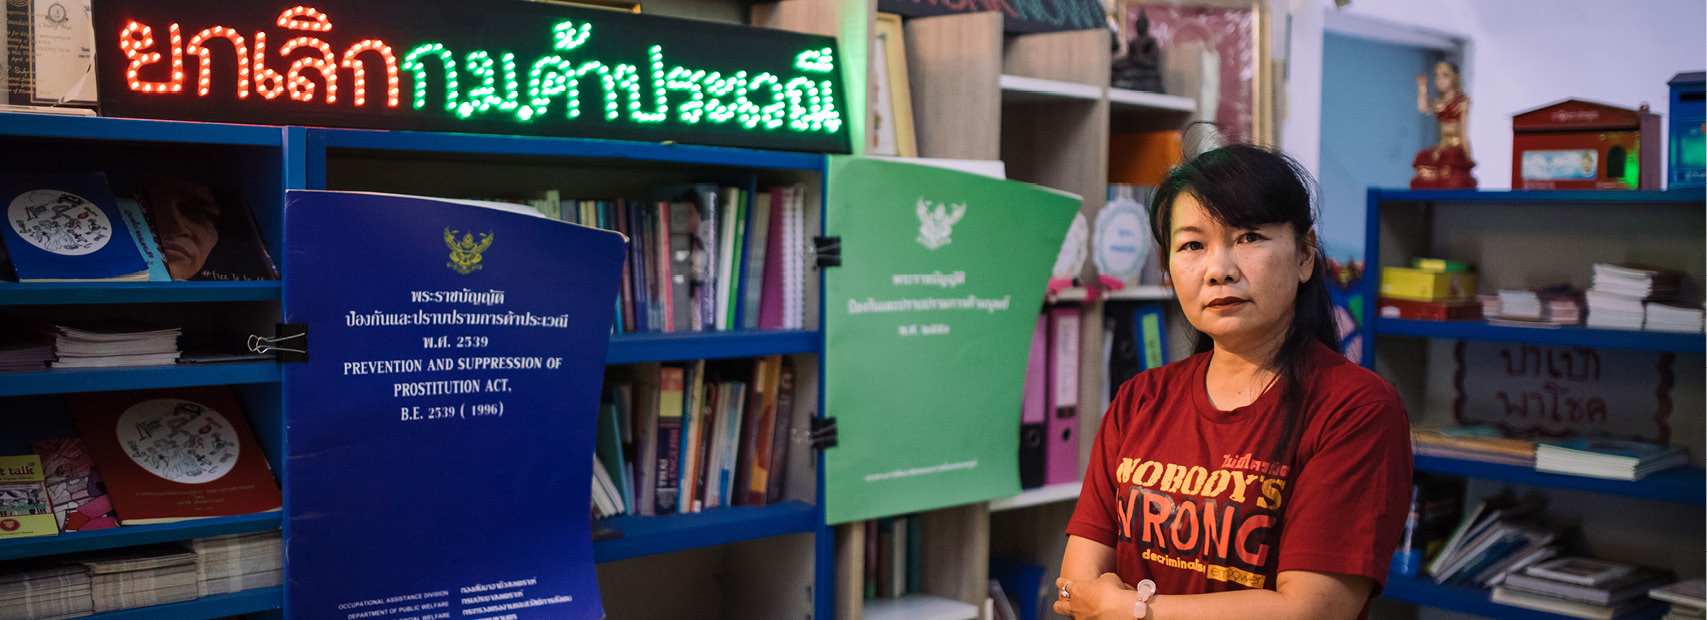 The recent shunting of Pattaya's highest-ranking police officers is forcing Thailand to confront its look-the-other-way attitude to prostitution. We chat to Thanta Laowilawanyakul, the coordinator of Empower Foundation, a charity fighting since 1985 for the legalization of prostitution, about why Thailand needs to drop the stigma around sex work.